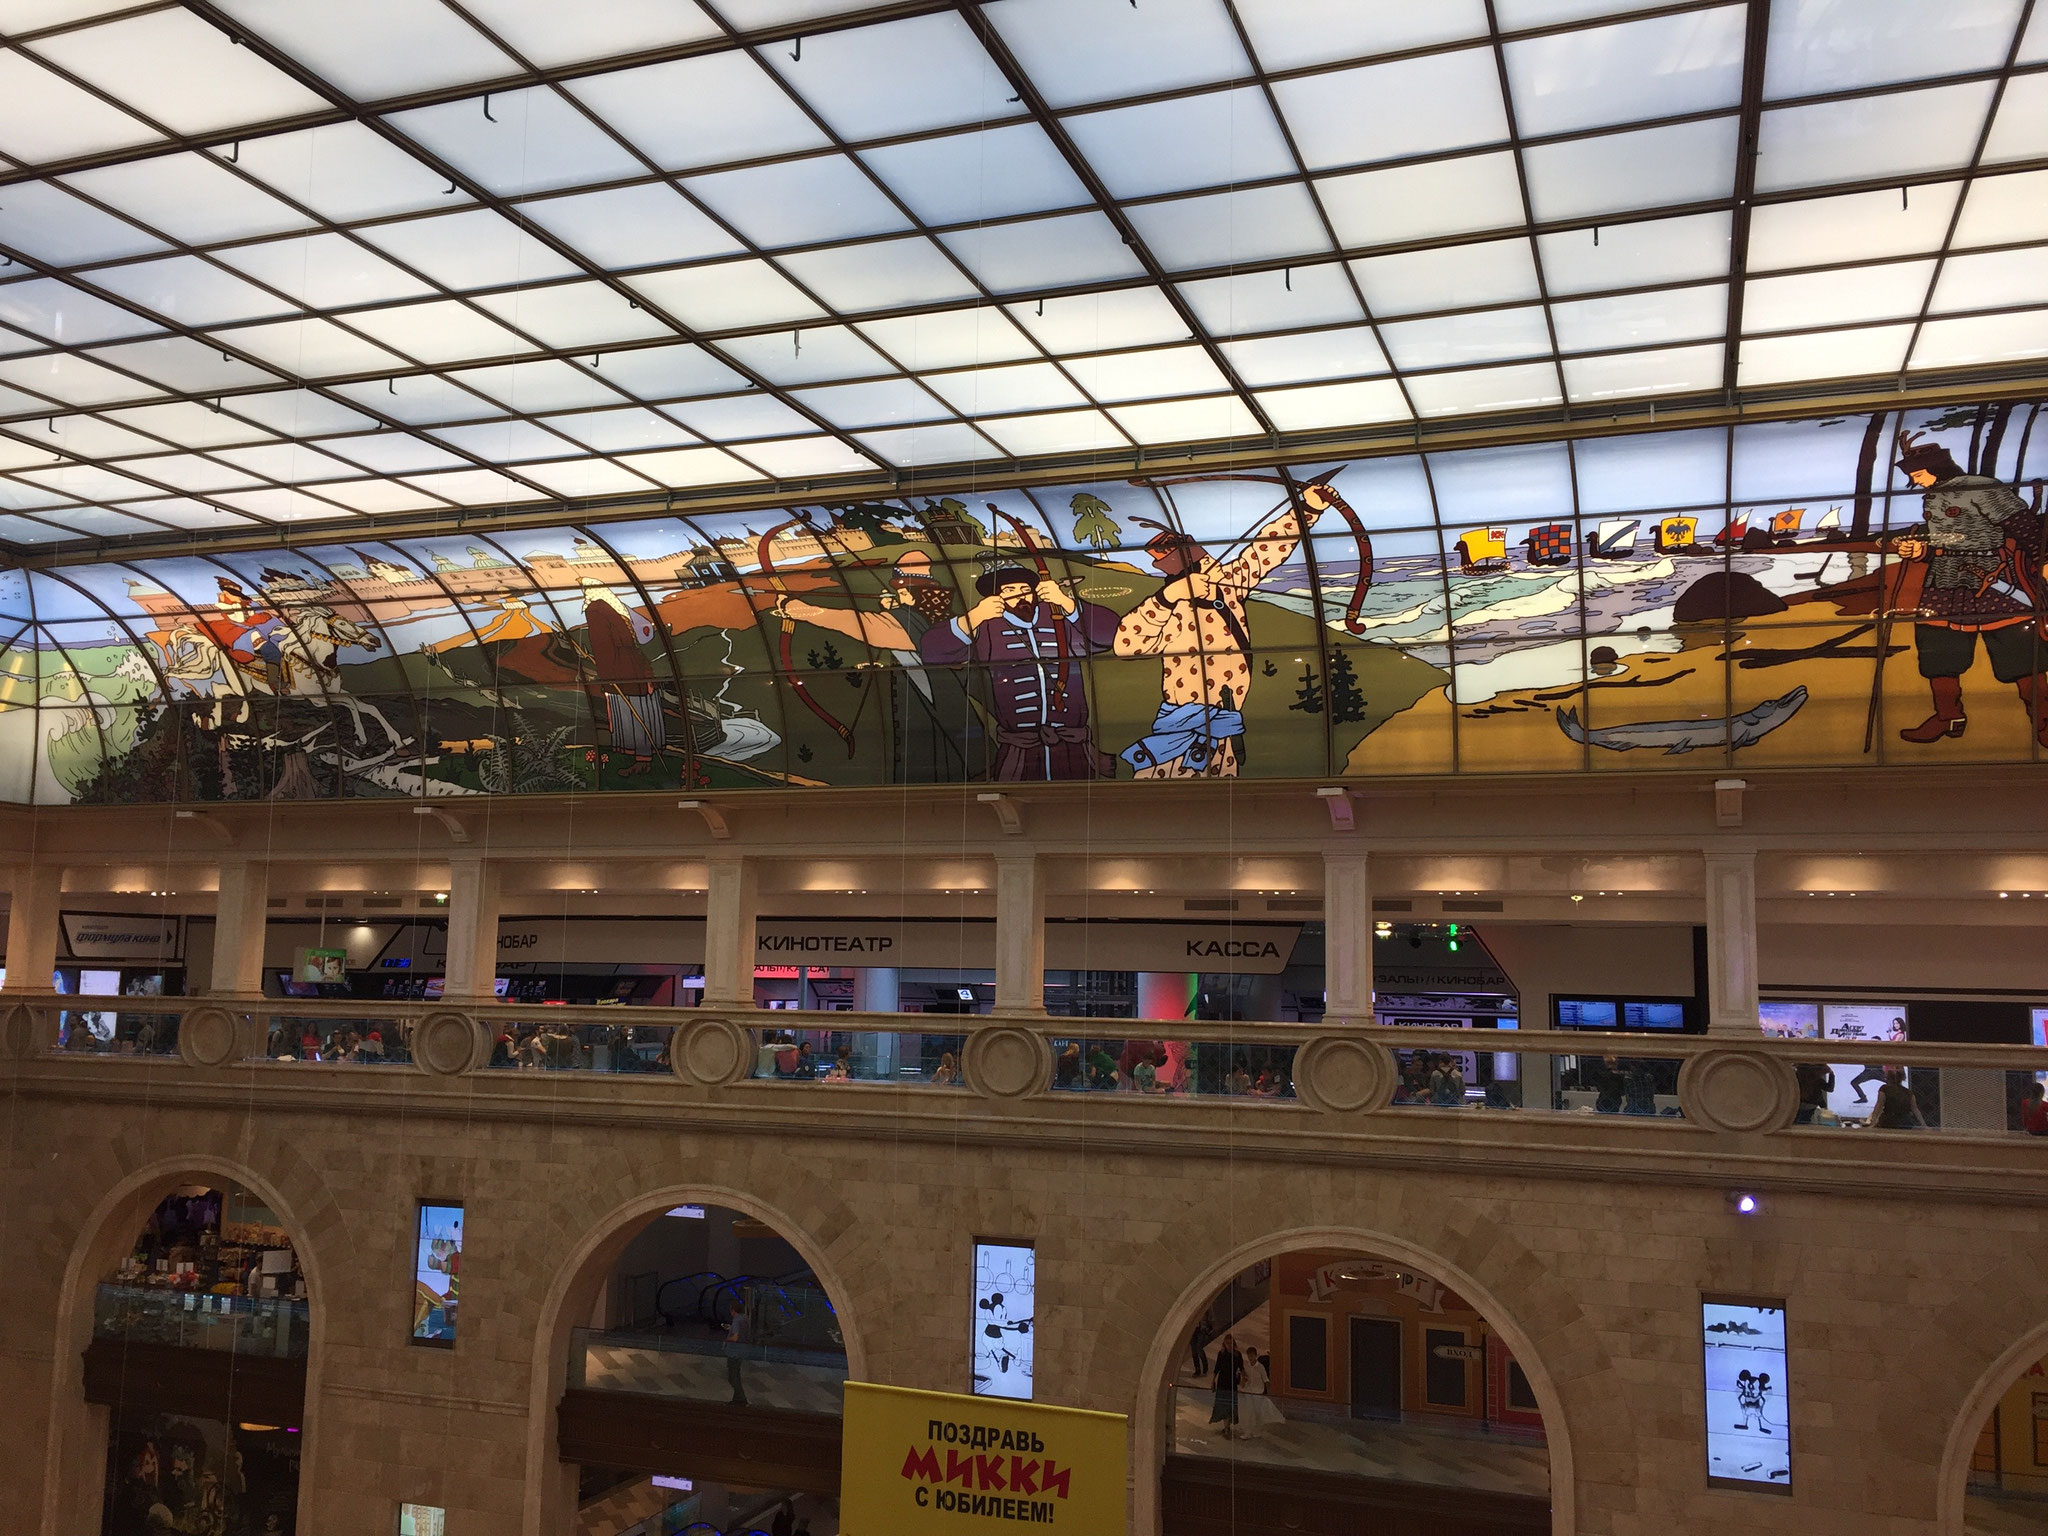 Children's department store in Moscow